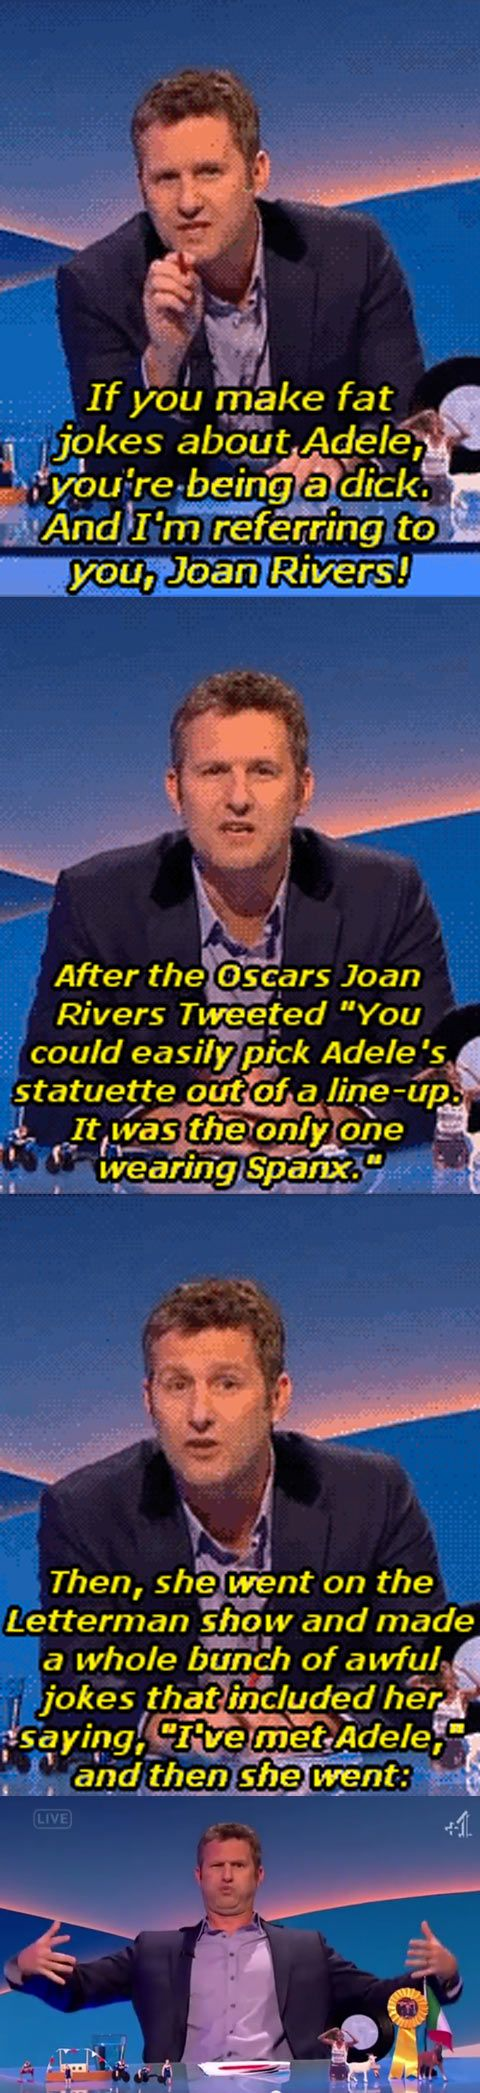 Women should be BUILDING EACH OTHER UP, NOT TEARING EACH OTHER DOWN!  Listen to this guy, Adam Hill...I have NO CLUE who this guy is, but what he has to say in defense of a woman (Joan Rivers) calling Adele fat, is RIGHT ON!